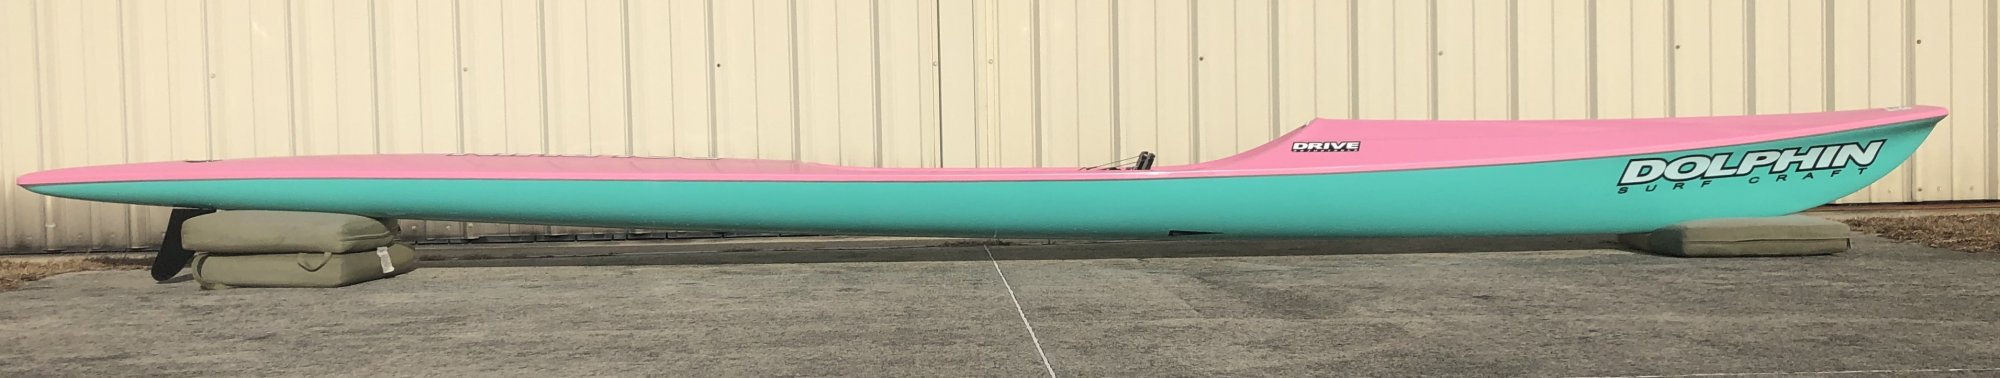 Dolphin Adjustable Drive II Surf Ski 19' - Demo 1033